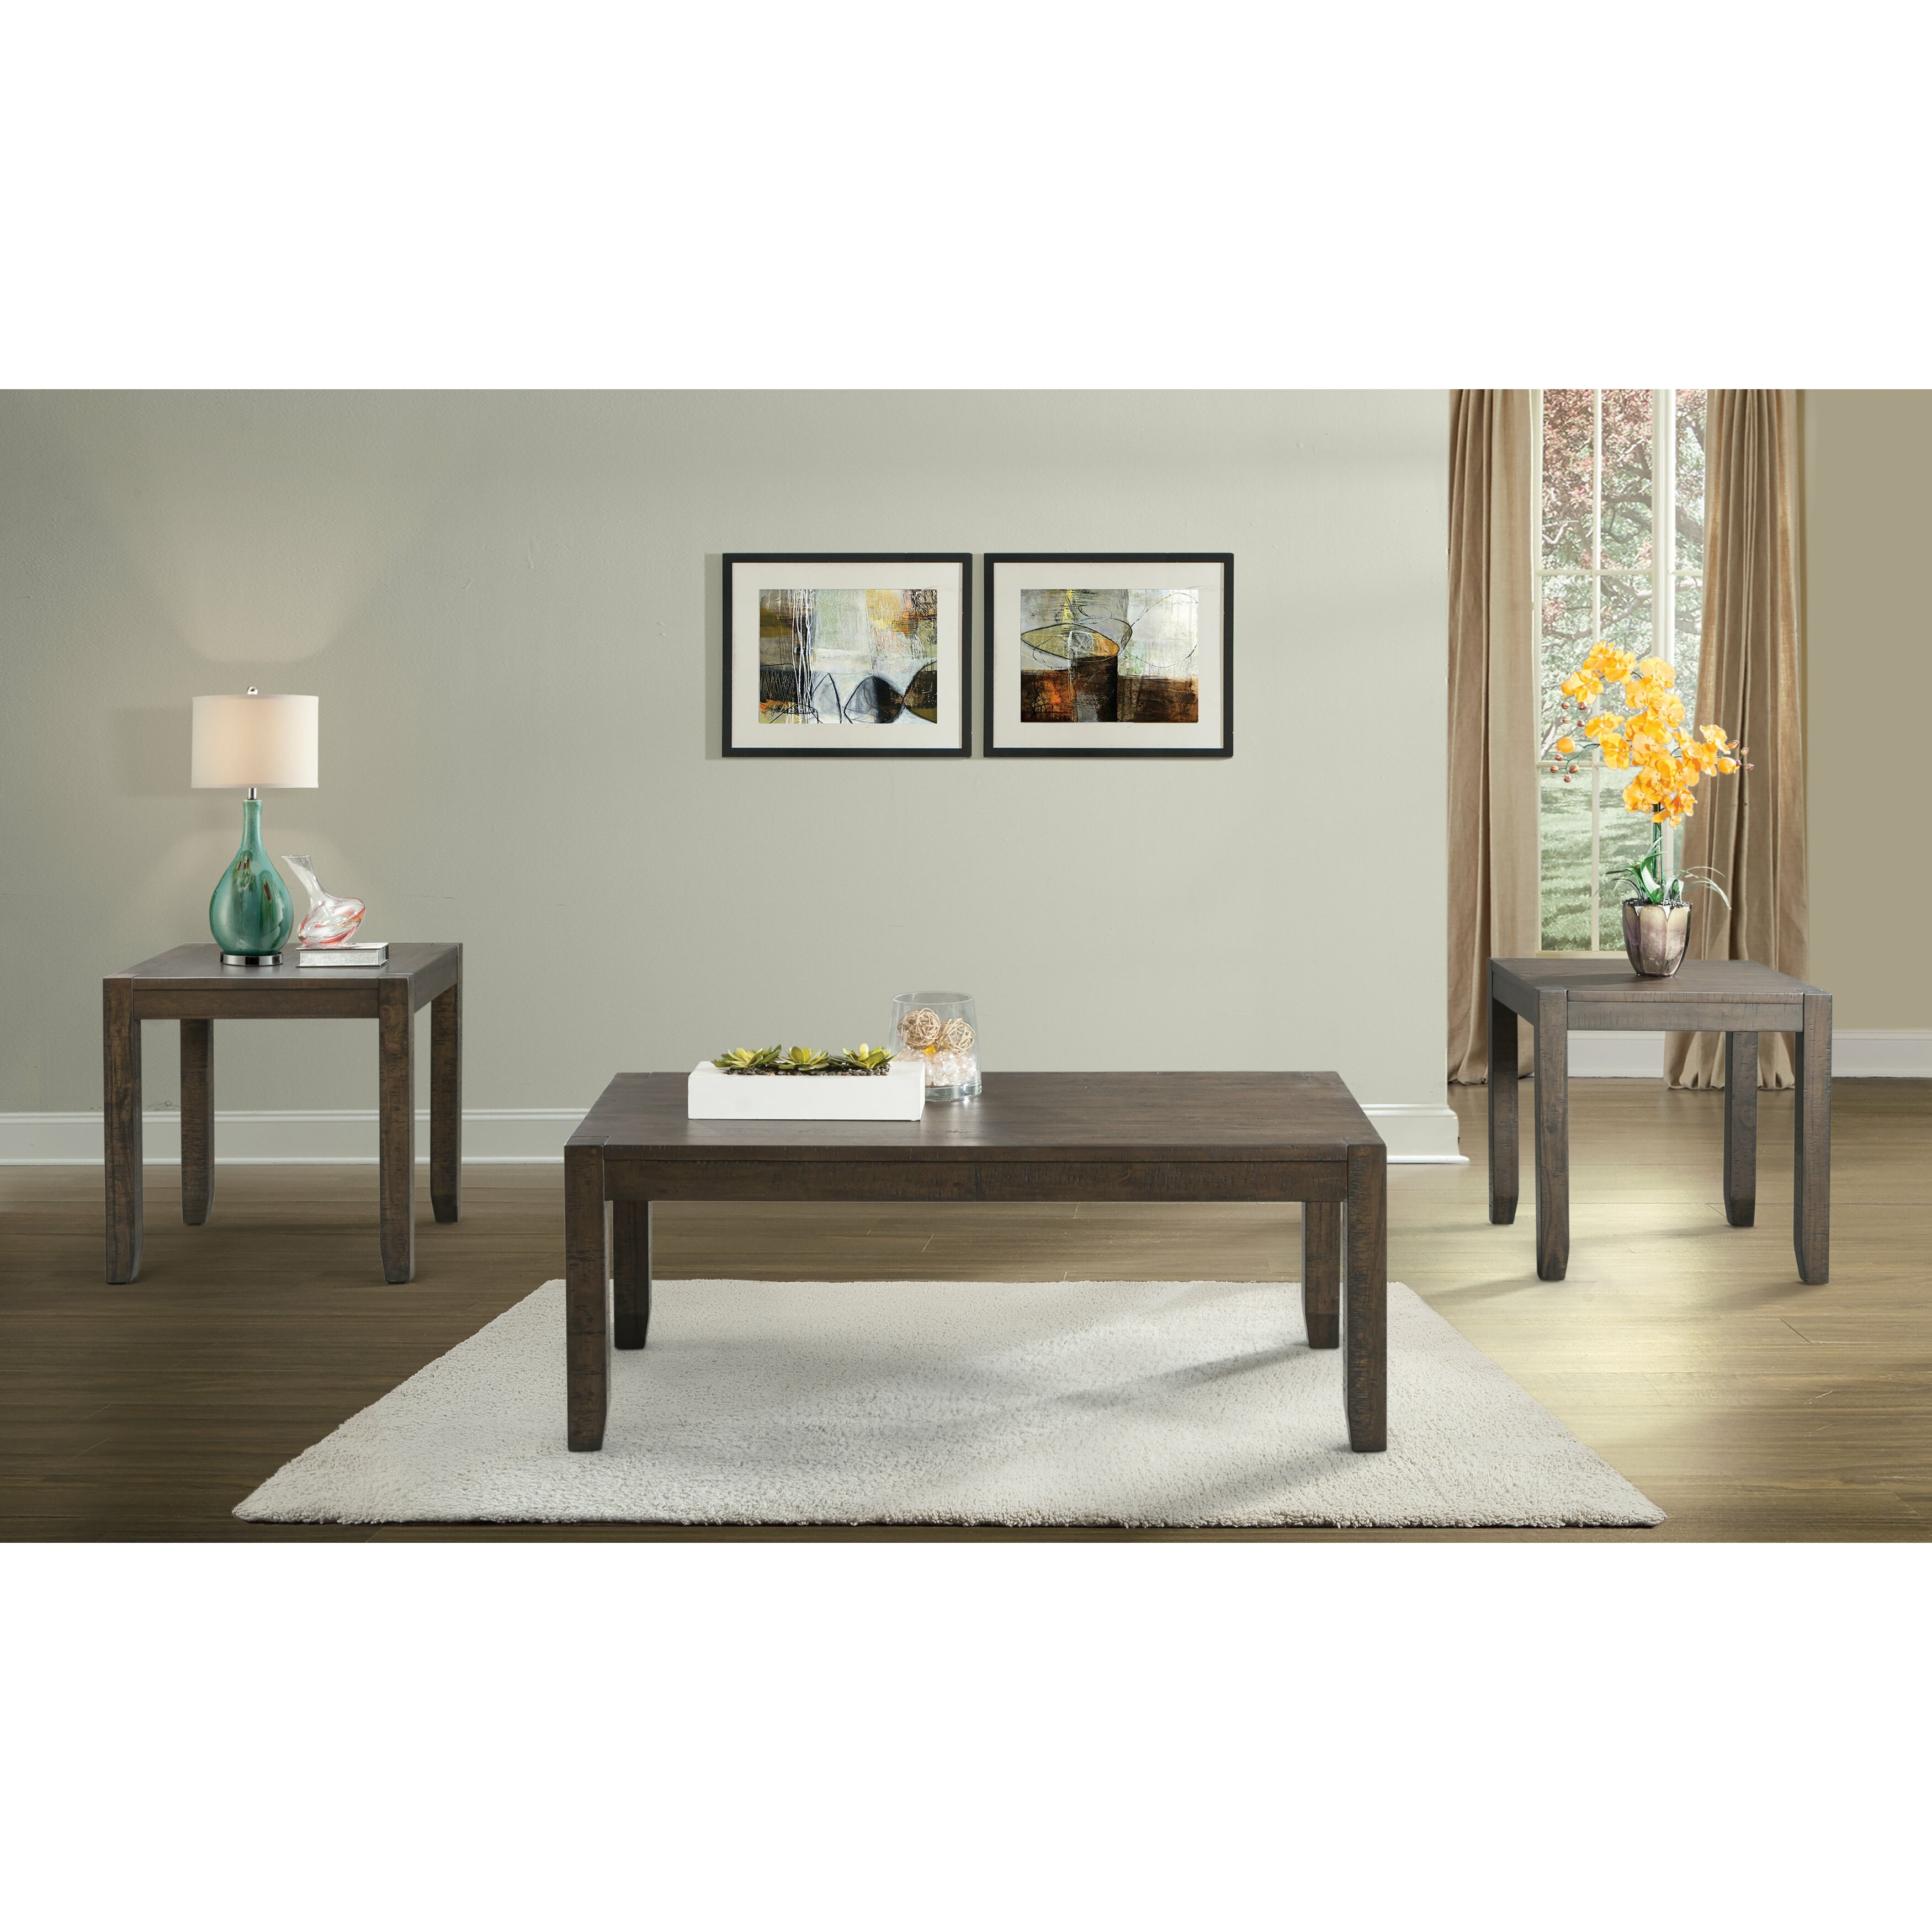 Alcott Hill Inwood Occasional 3 Piece Coffee Table Set